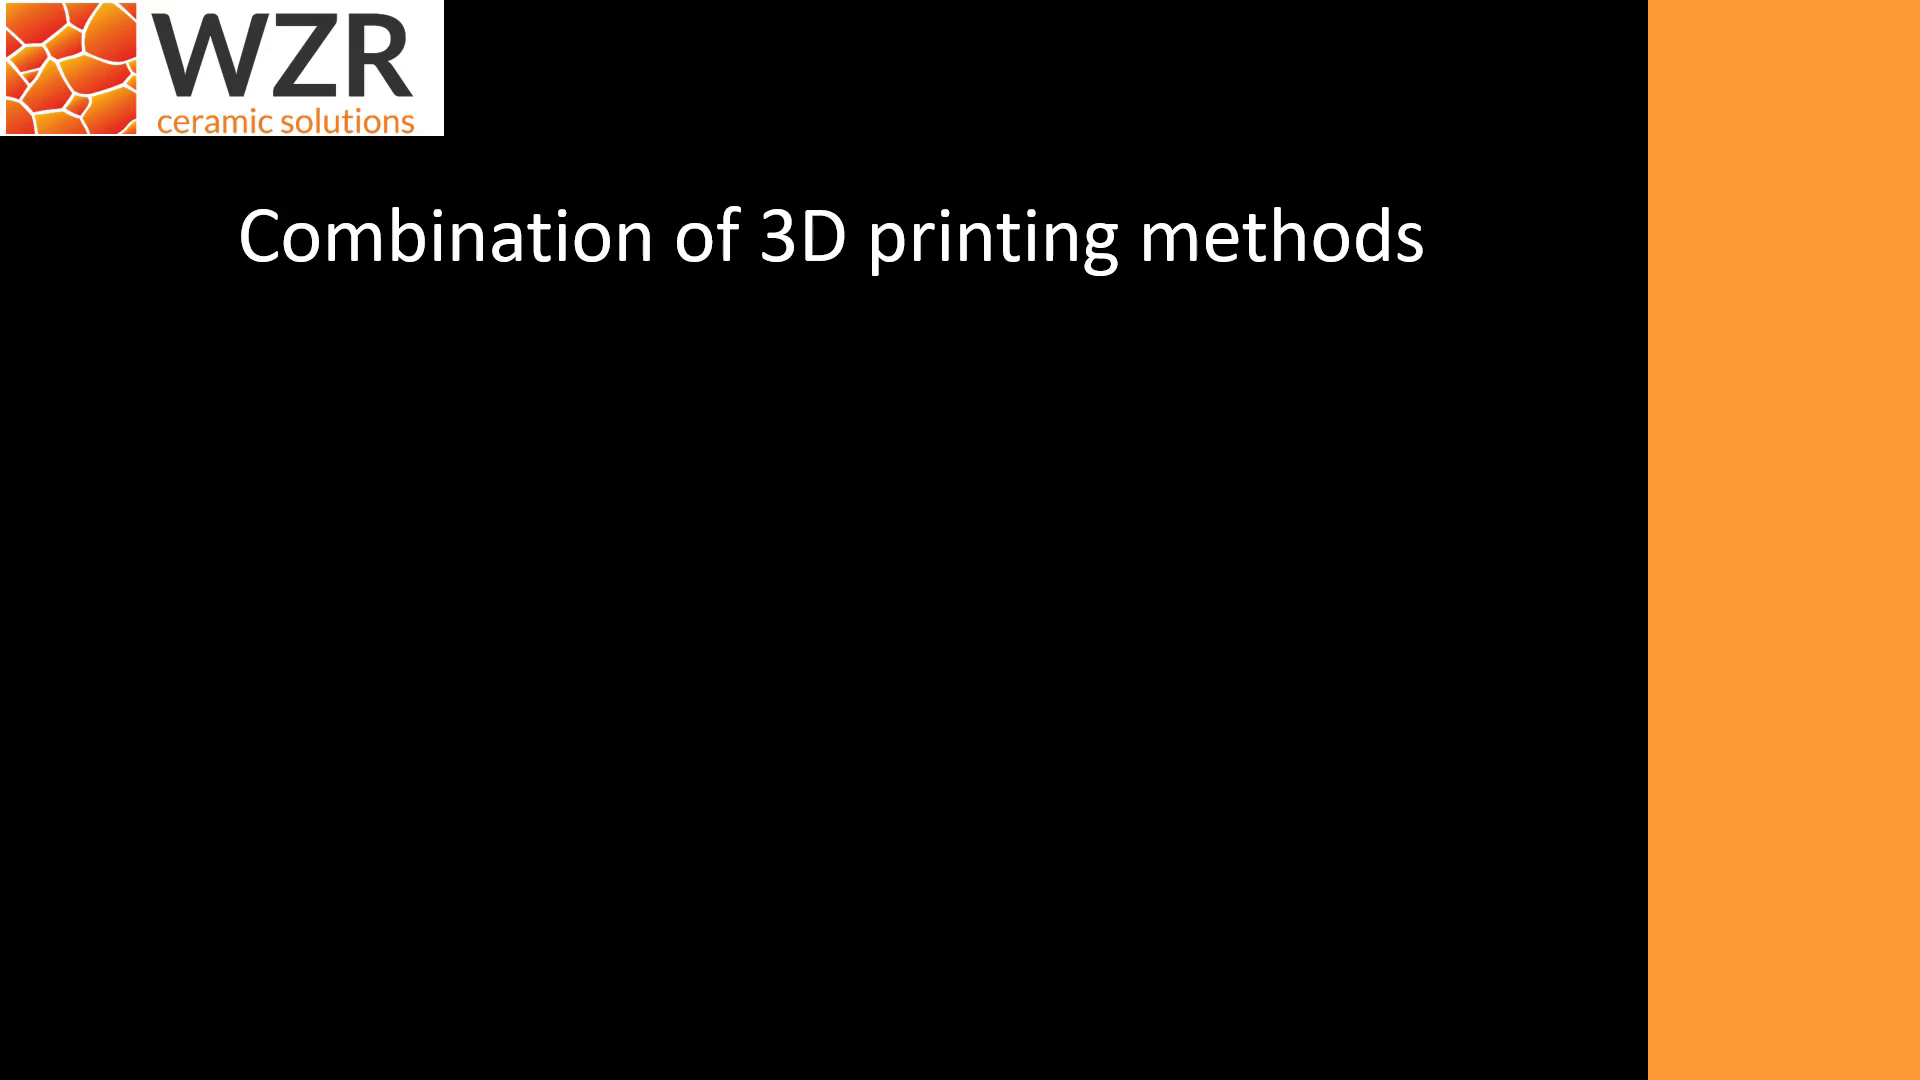 Combination of 3D printing methods